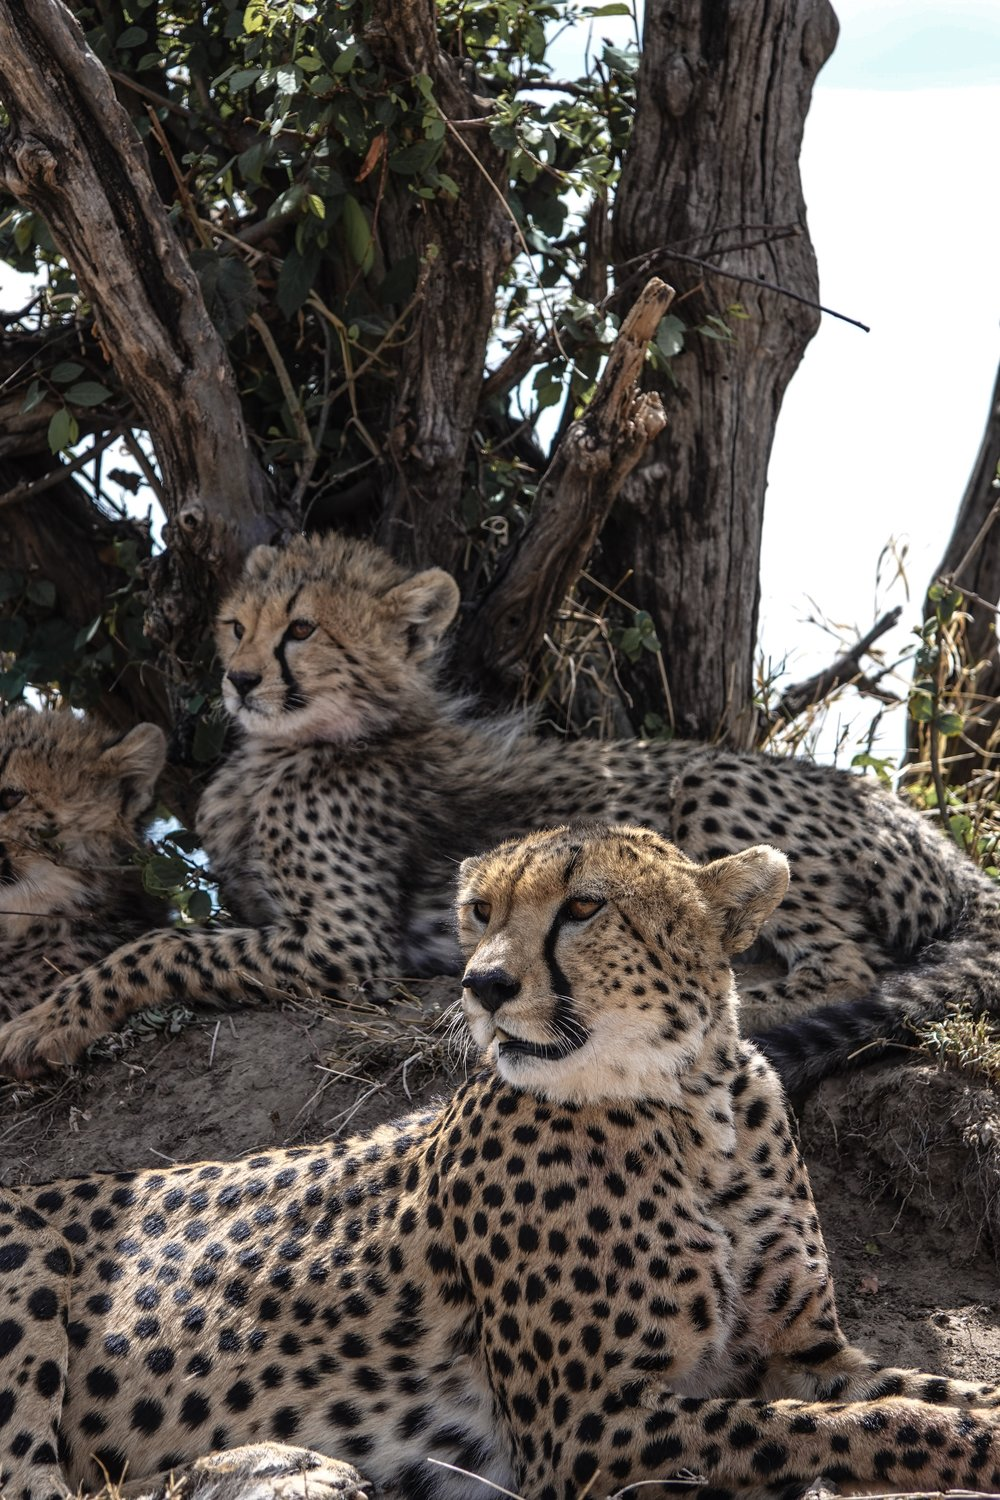 Cheetah + Cubs in Kenya, Africa Ph. Ashley Torres